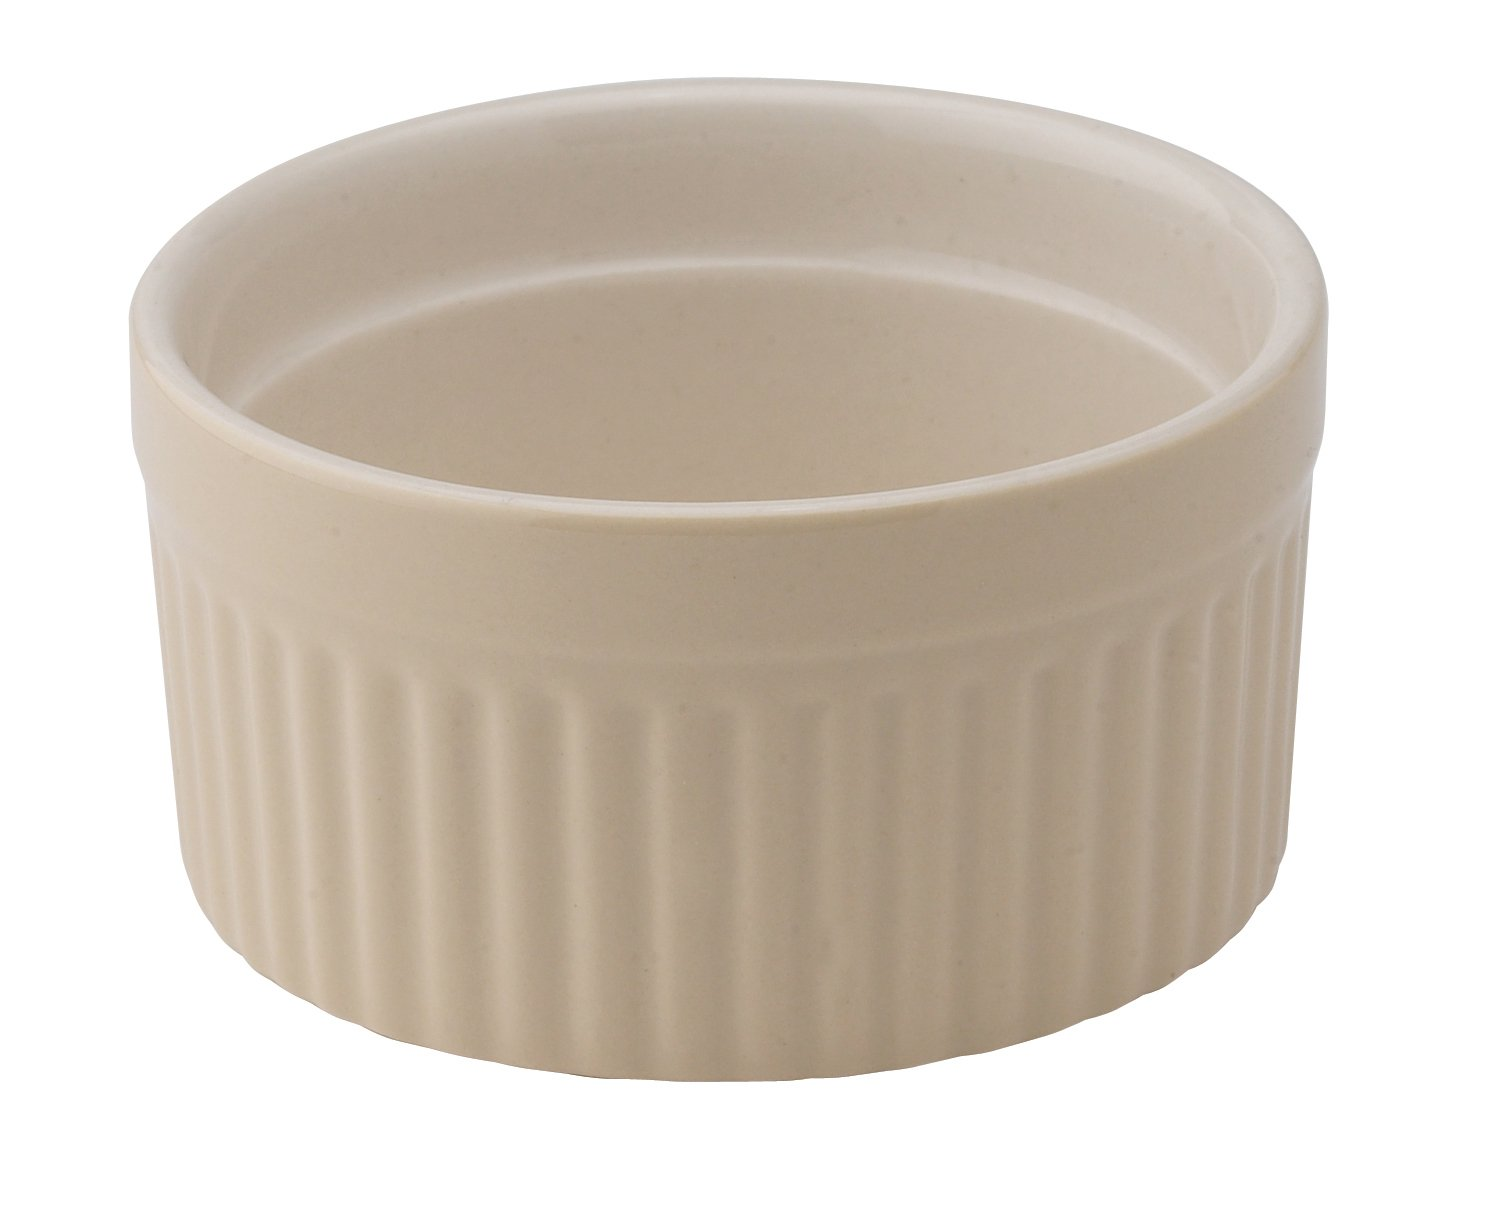 HIC Brands Ceramic 6-Ounce Souffle Dish, Wheat, Set of 6 HIC Brands that Cook 98005WT-HIC